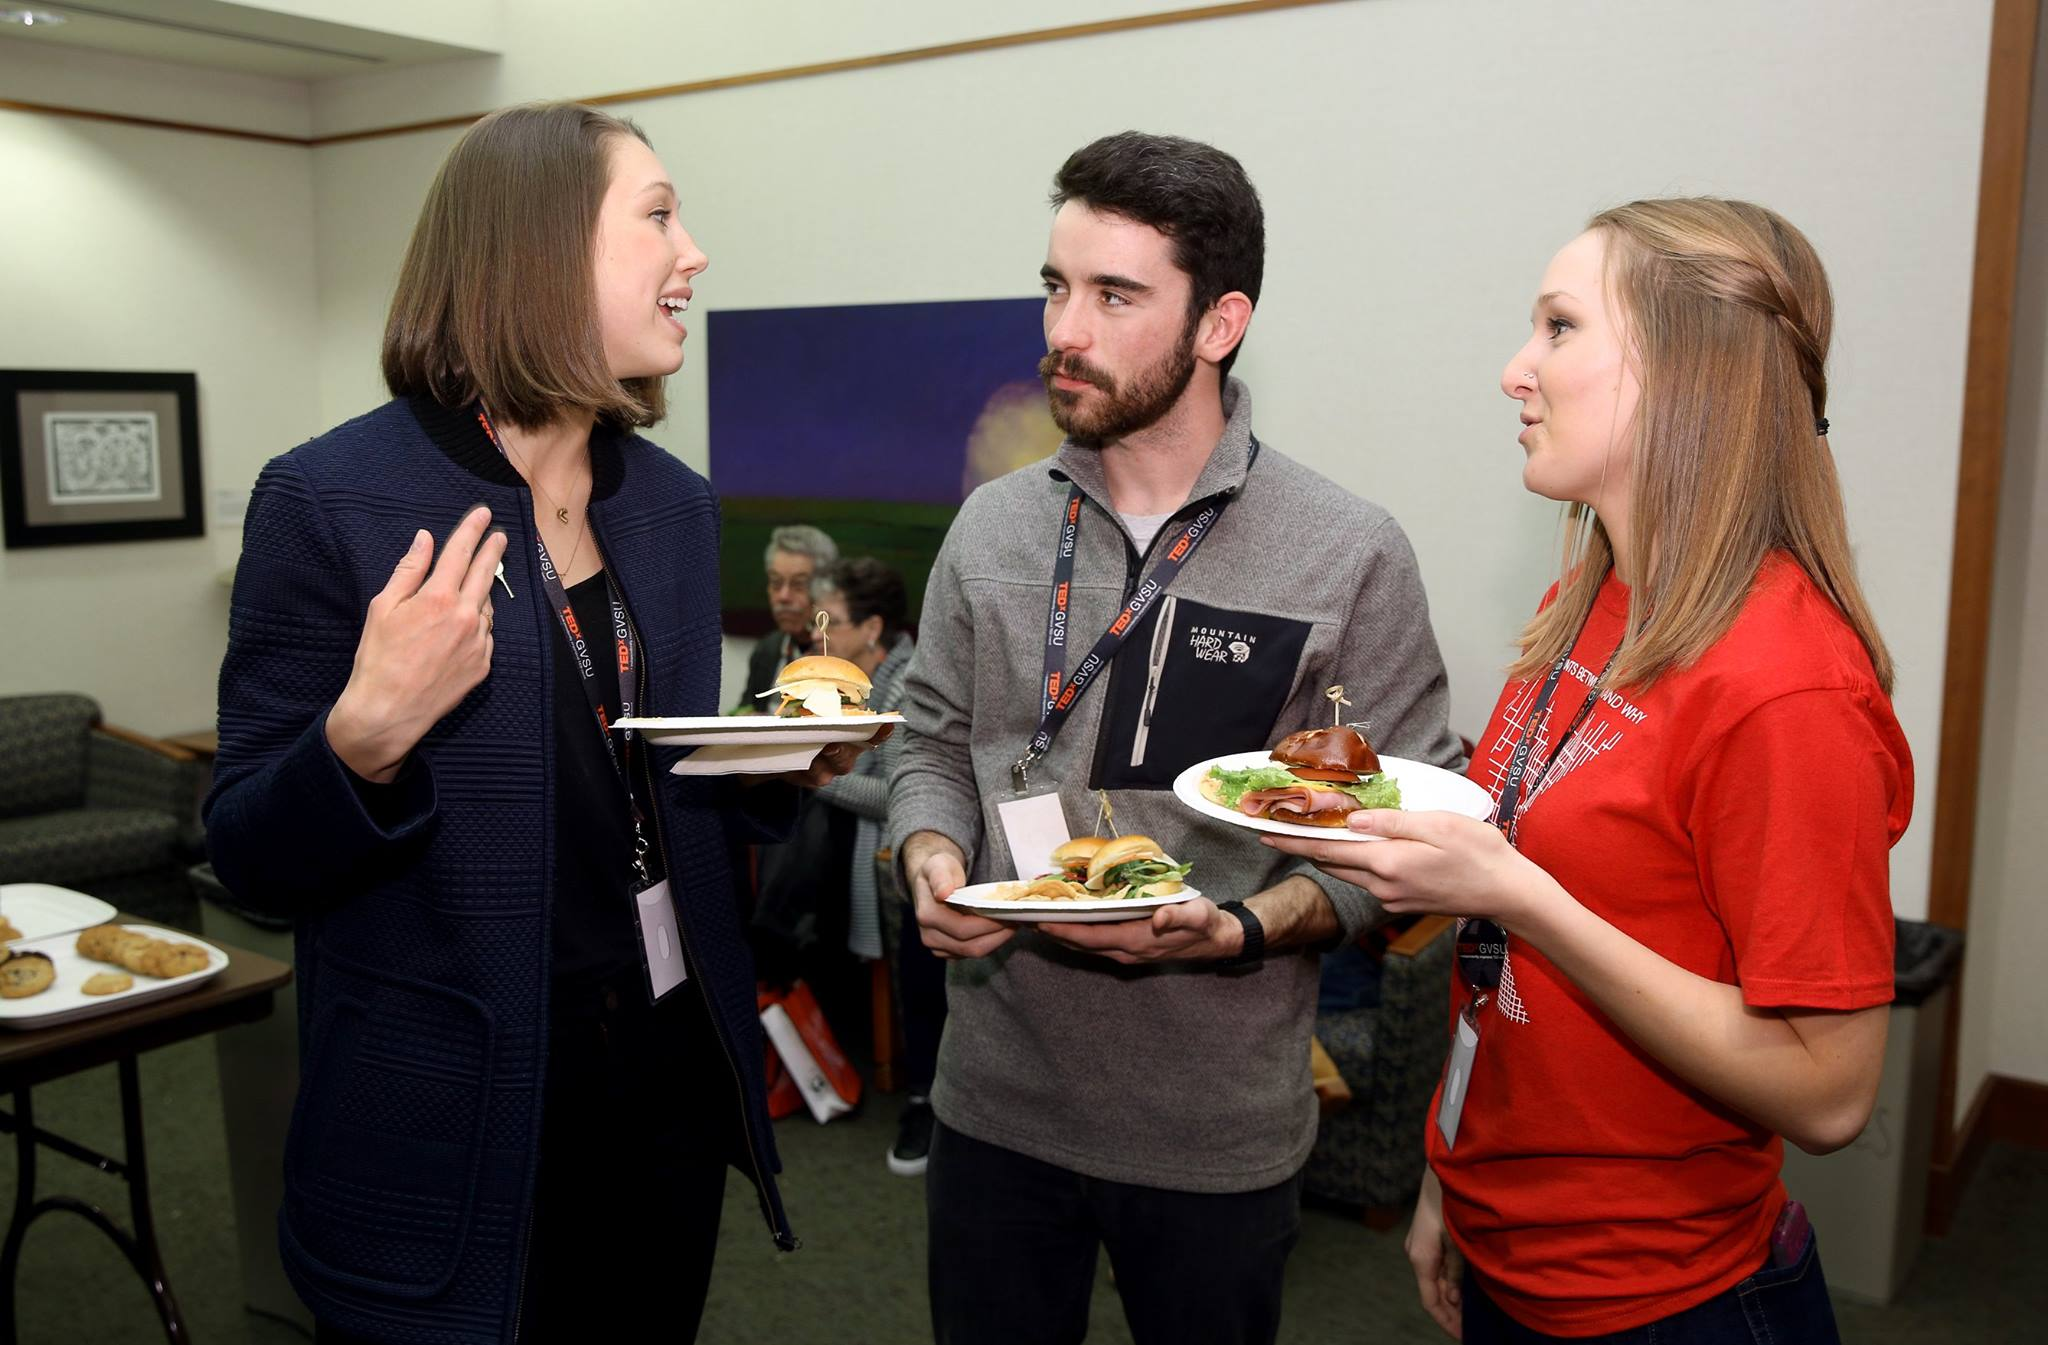 TedXGVSU attendees chat with a volunteer.